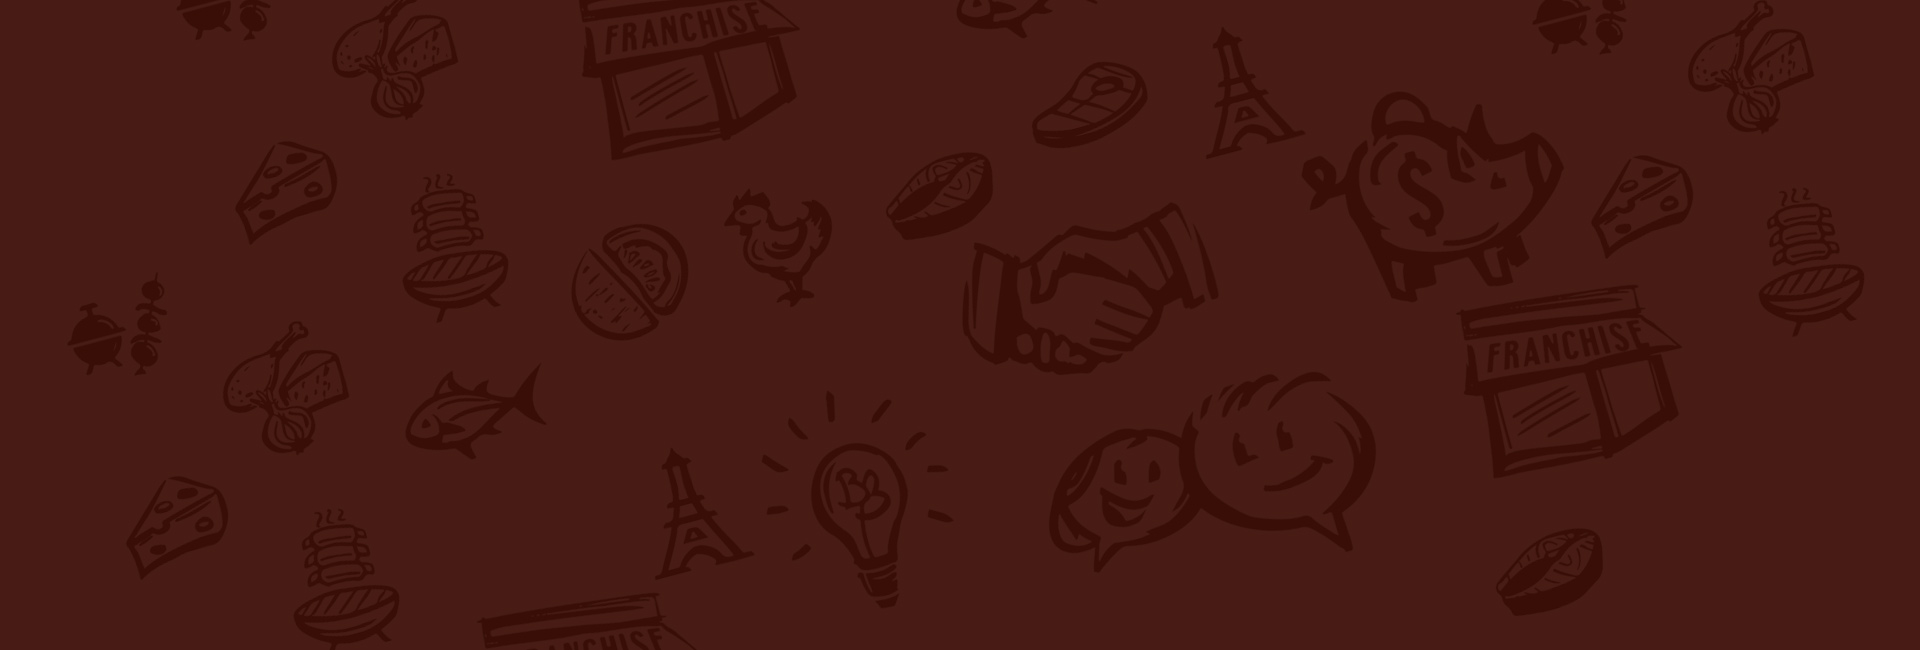 A series of illustrated <span>icons for the Bageterie Boulevard brand</span>